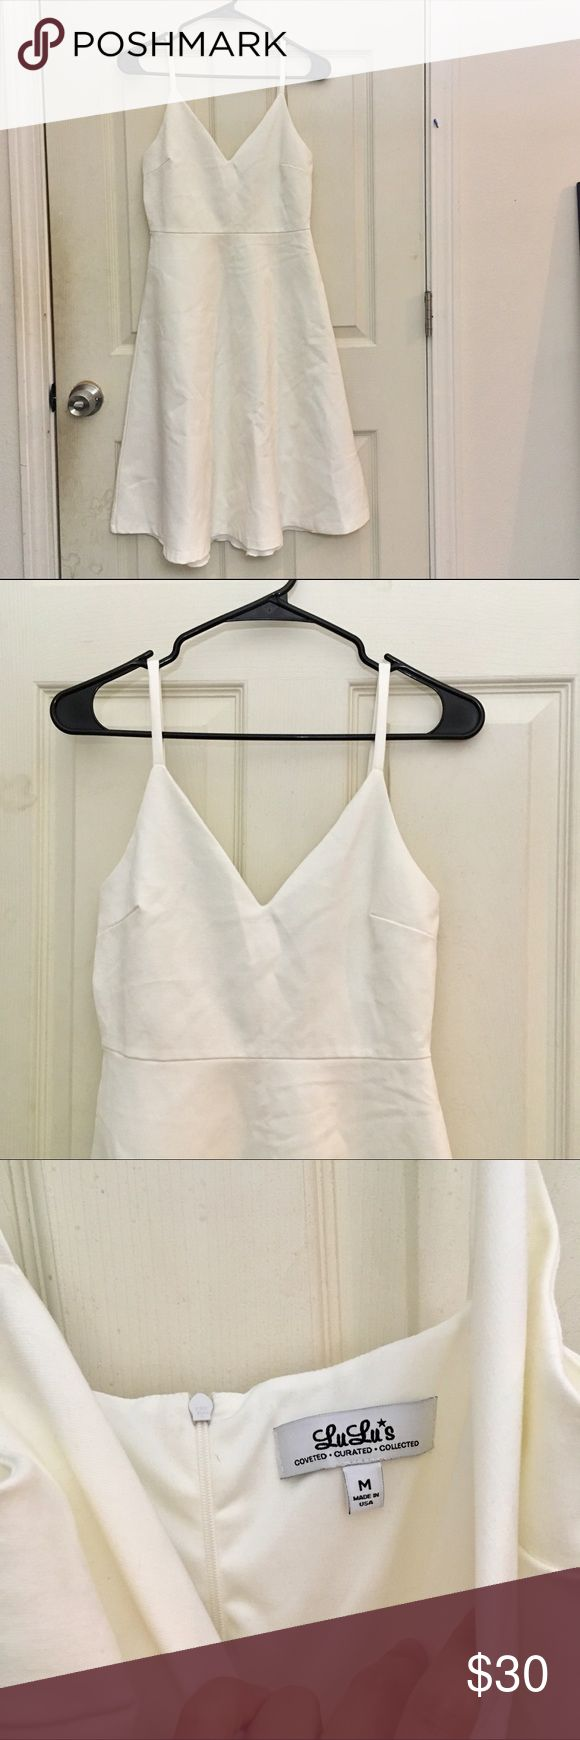 Lulu's white skater dress New without tag. Size M, length of the dress is 37inches Lulu's Dresses Mini